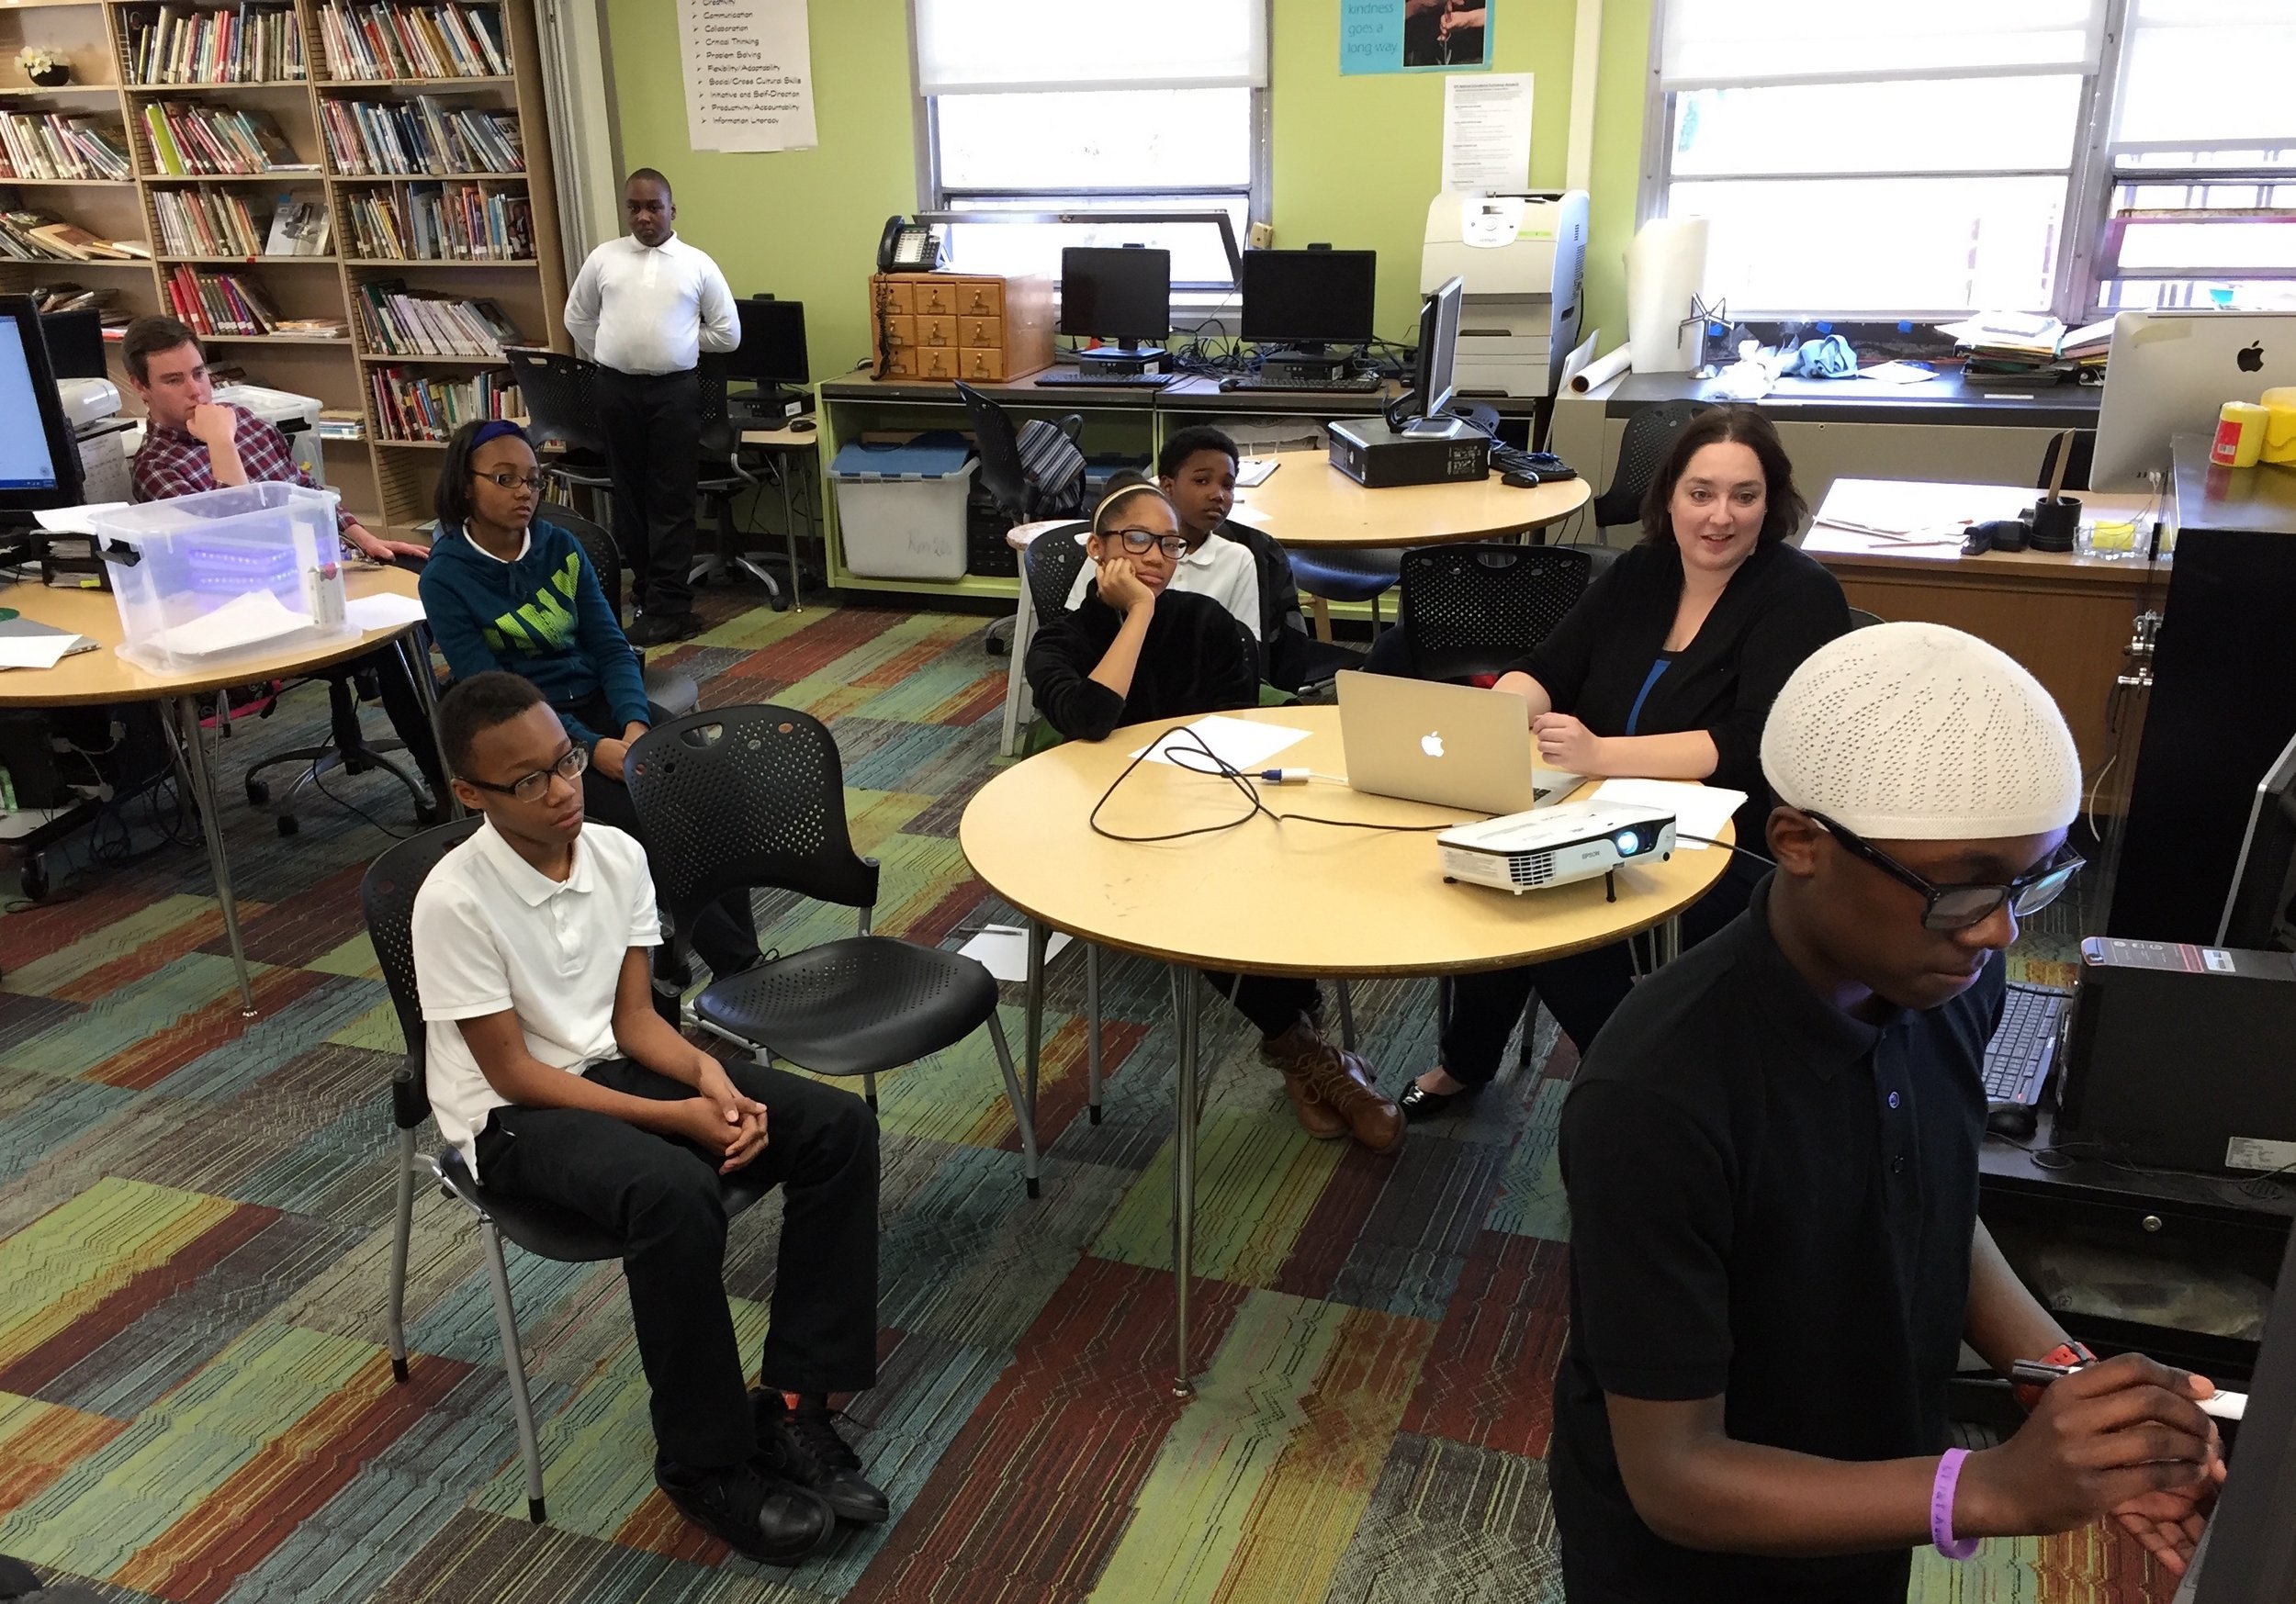 Dunne (CPS) Middle School Students Collaborating on Group Project